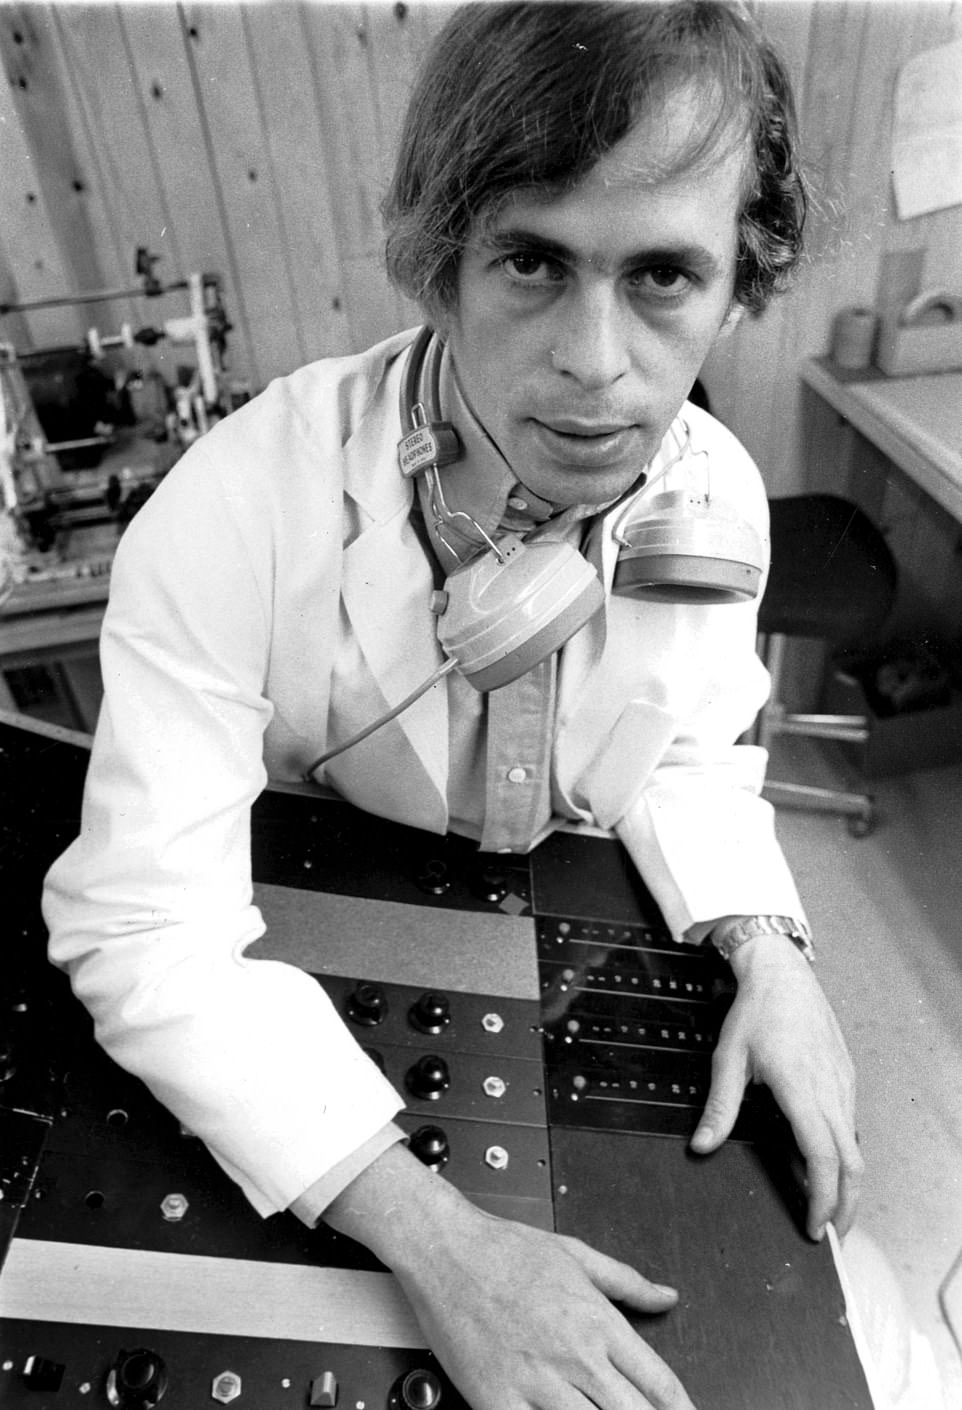 Alex Mardas (Magic Alex), head of the electronics division of The Beatles' Apple business venture, pictured in 1968